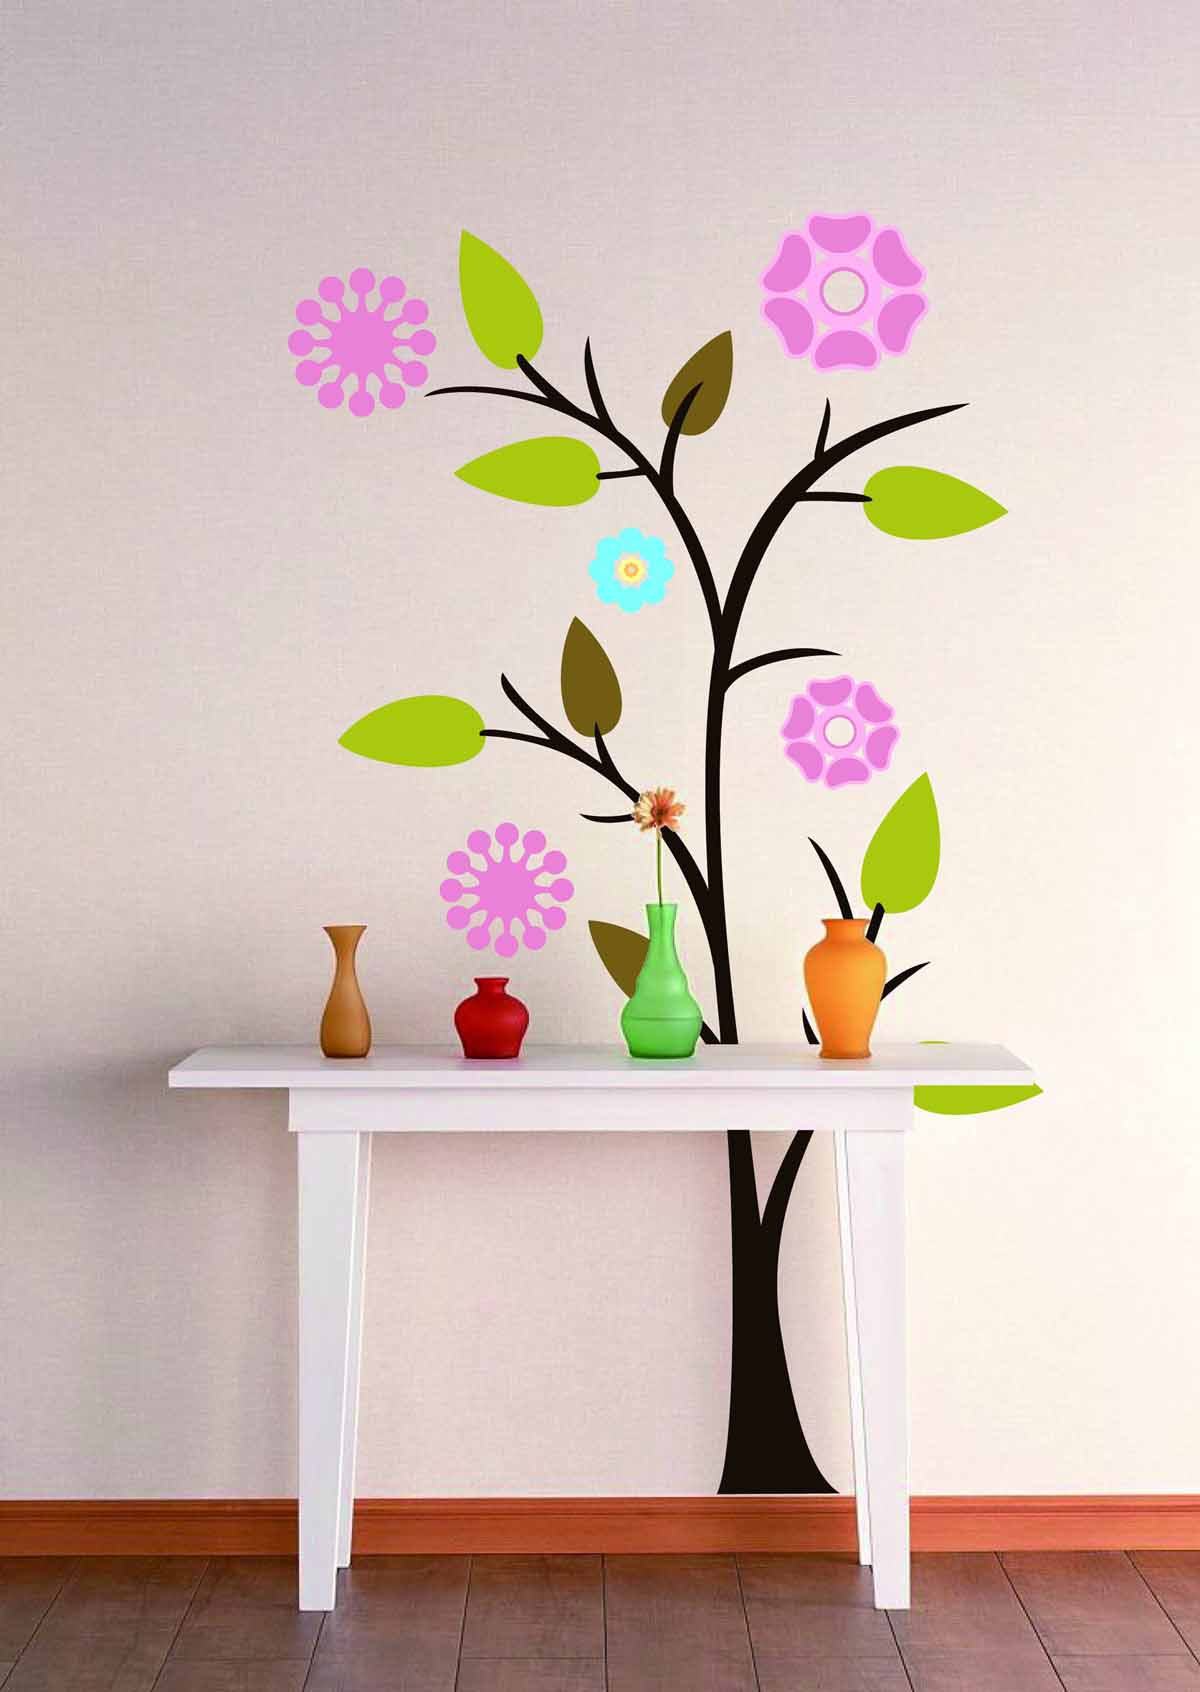 70 beautiful wall stickers | Top Design Magazine - Web Design and ...